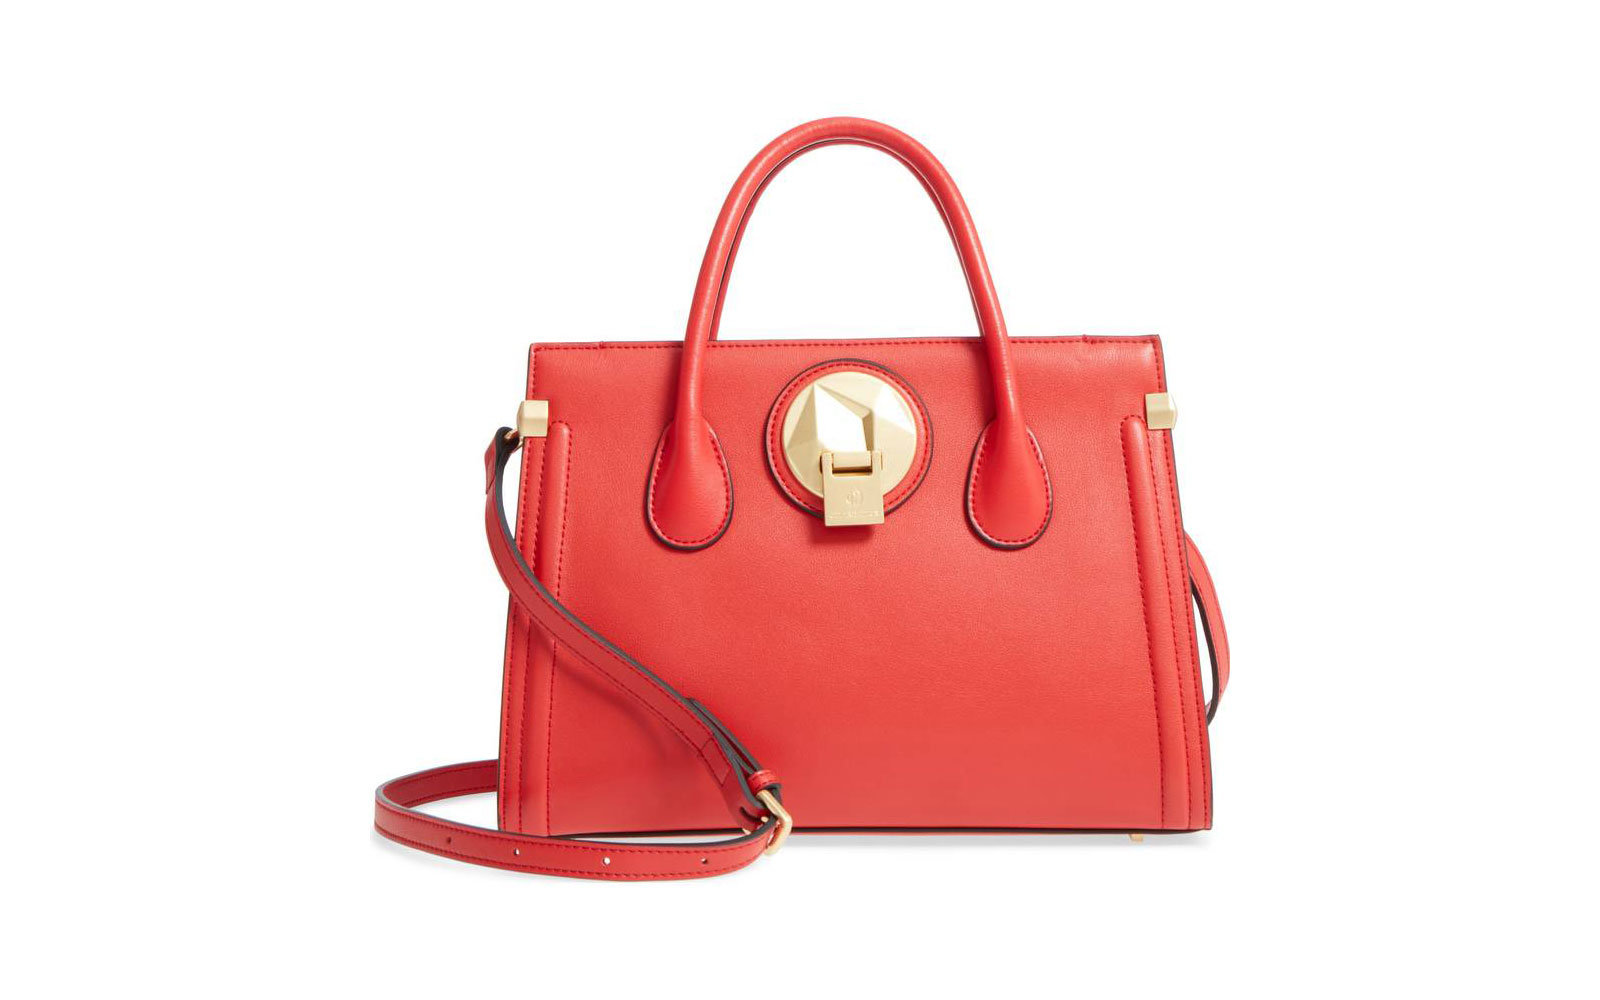 Celine Dion red tote